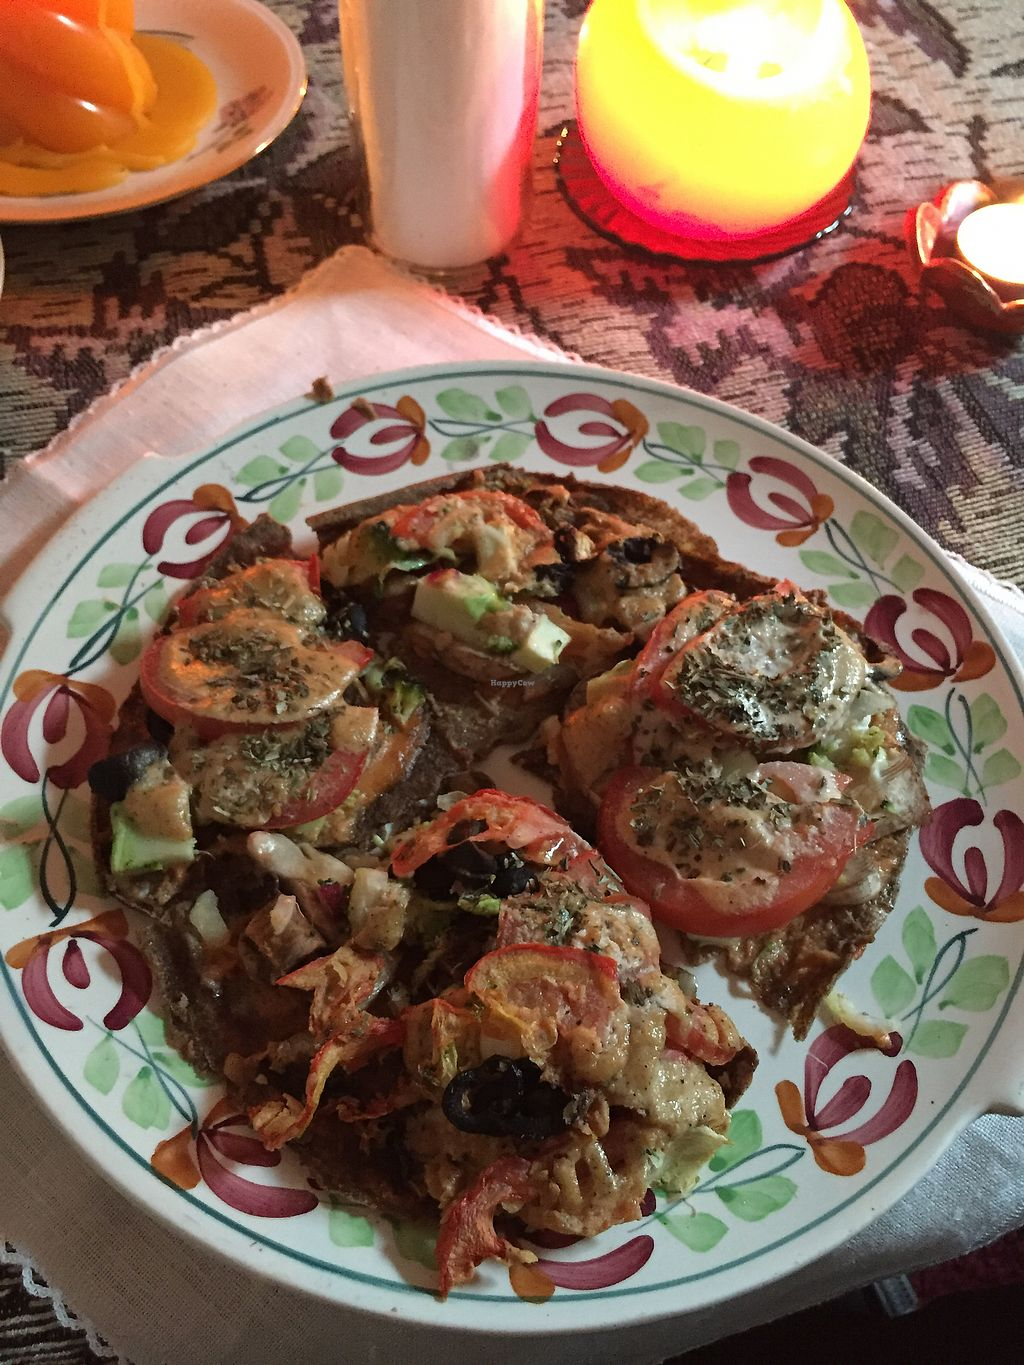 """Photo of Nata Raw  by <a href=""""/members/profile/plantsforants"""">plantsforants</a> <br/>Raw Pizza! OMG YUM! <br/> October 25, 2017  - <a href='/contact/abuse/image/85899/318764'>Report</a>"""